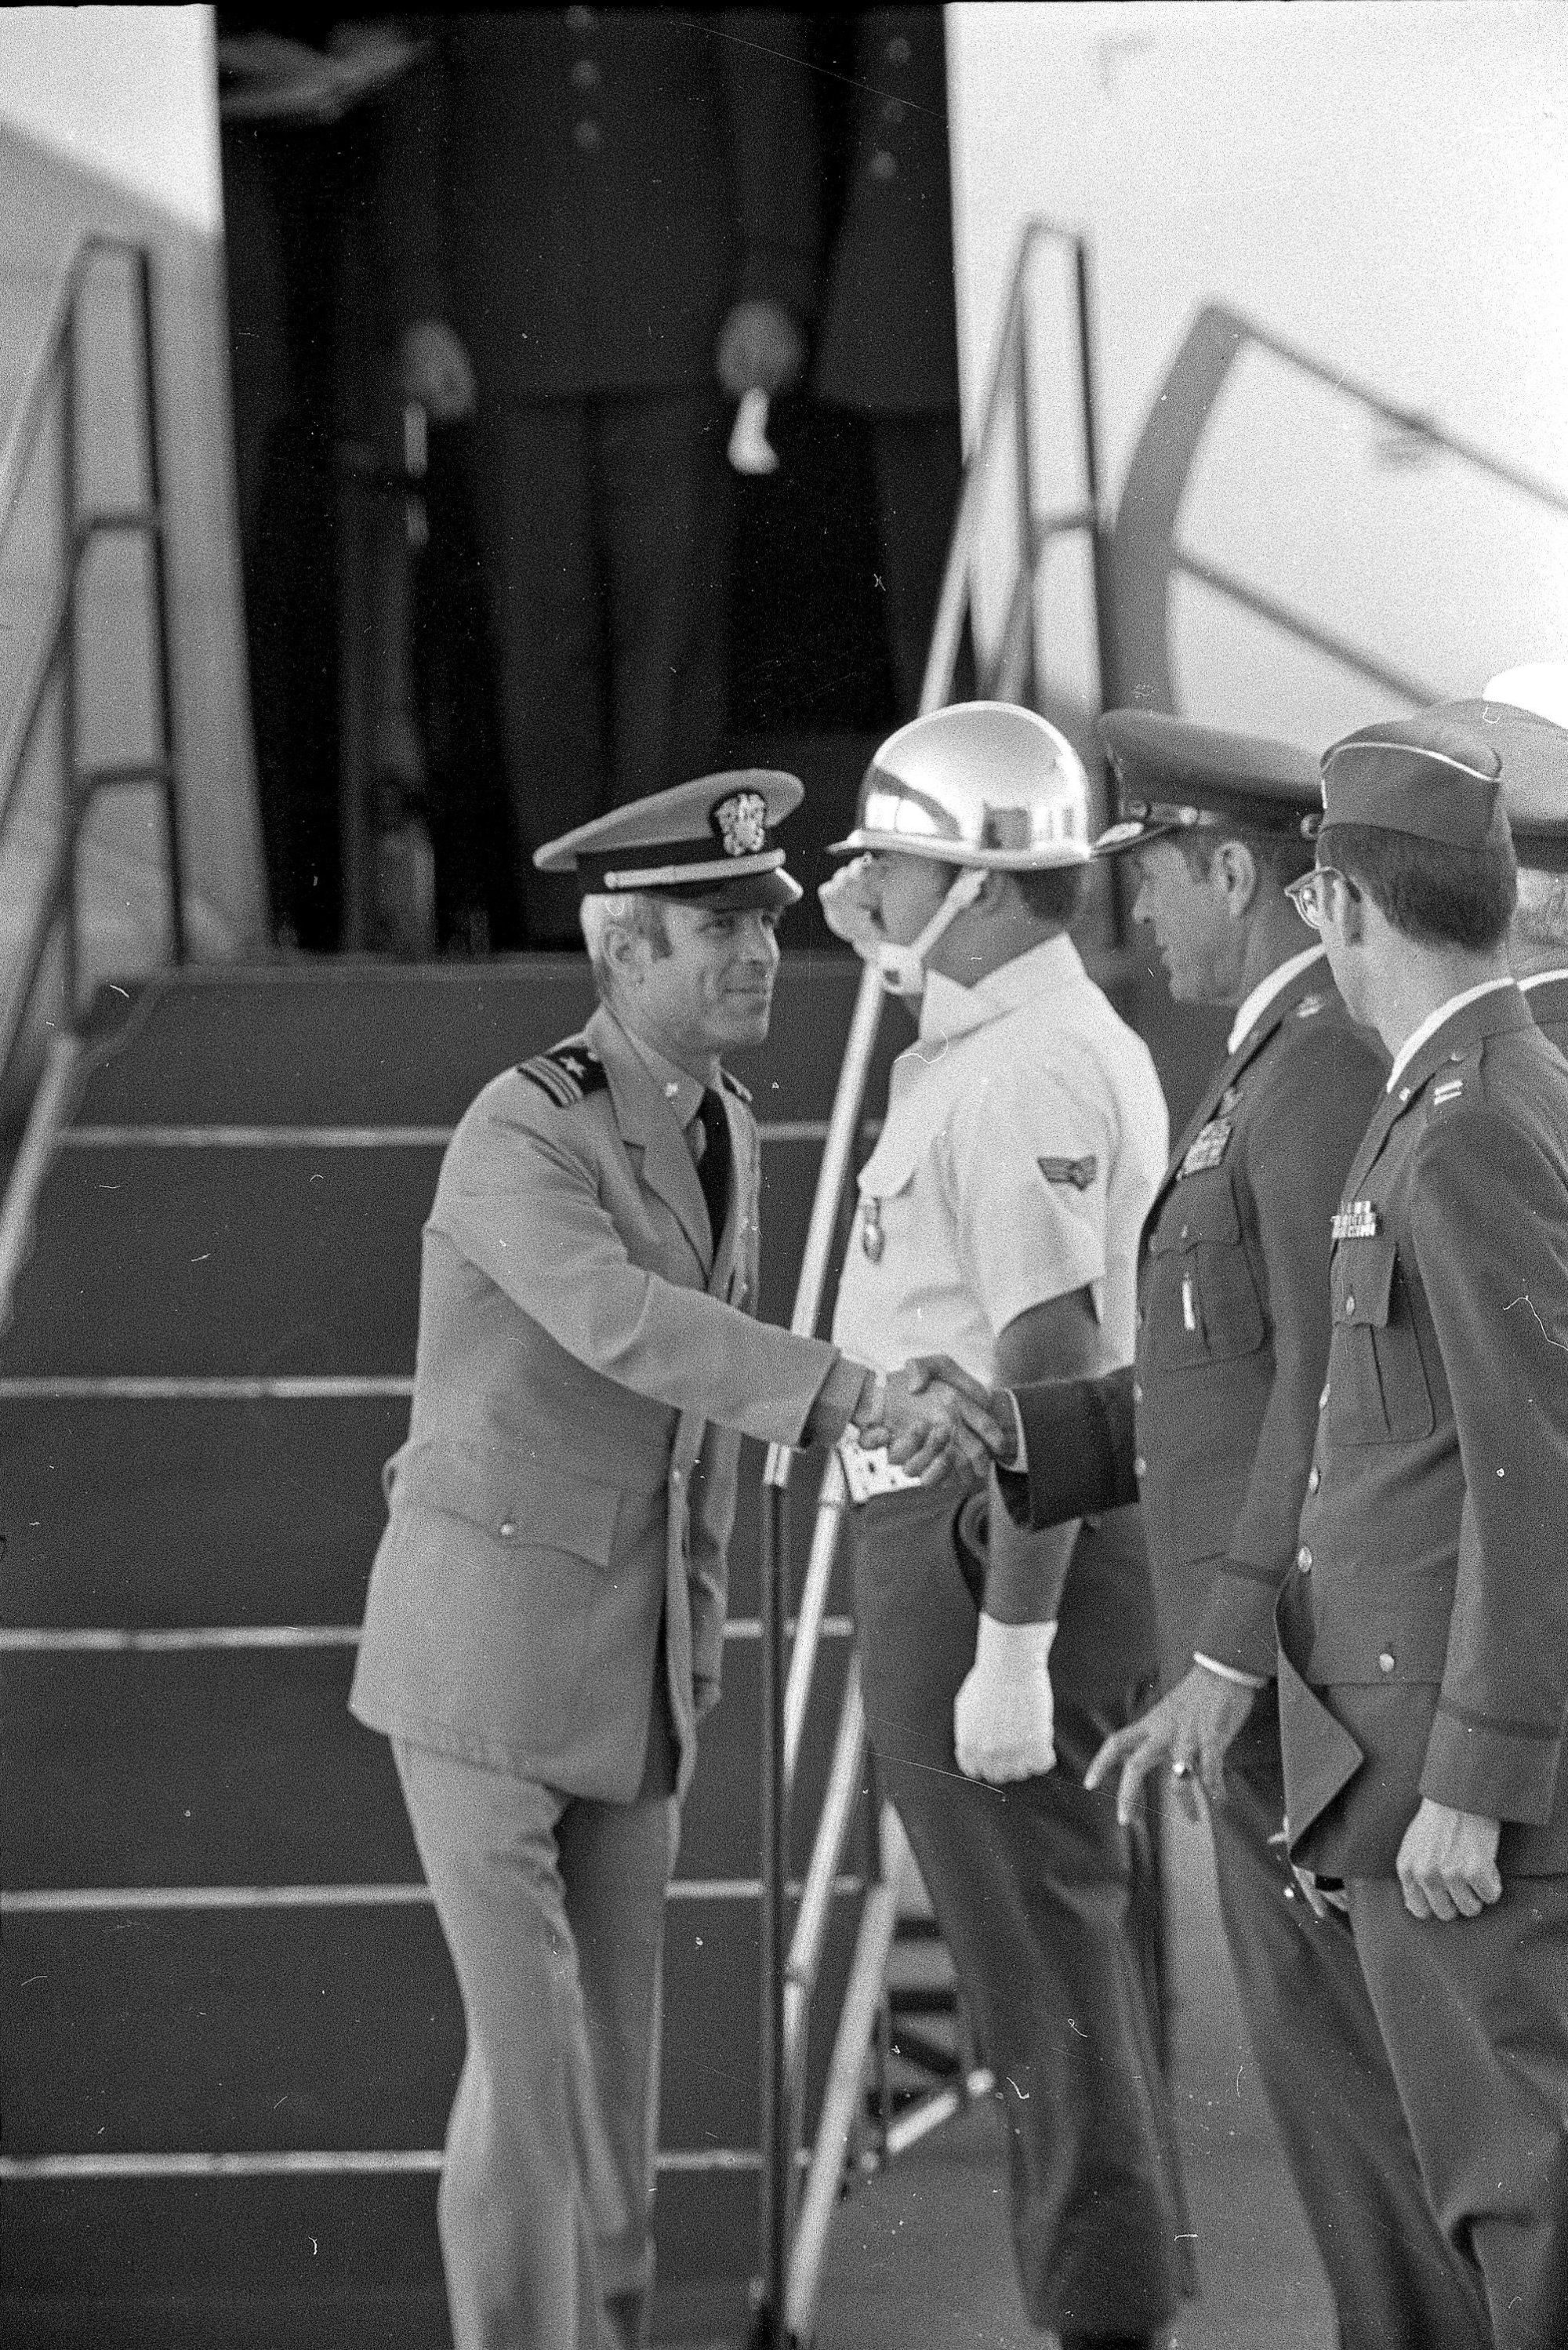 Navy Cmdr. John S. McCain III, a released POW, is greeted by Air Force officers as he deplanes at Maxwell Air Force Base in Alabama on March 17, 1973.  (AP Photo)